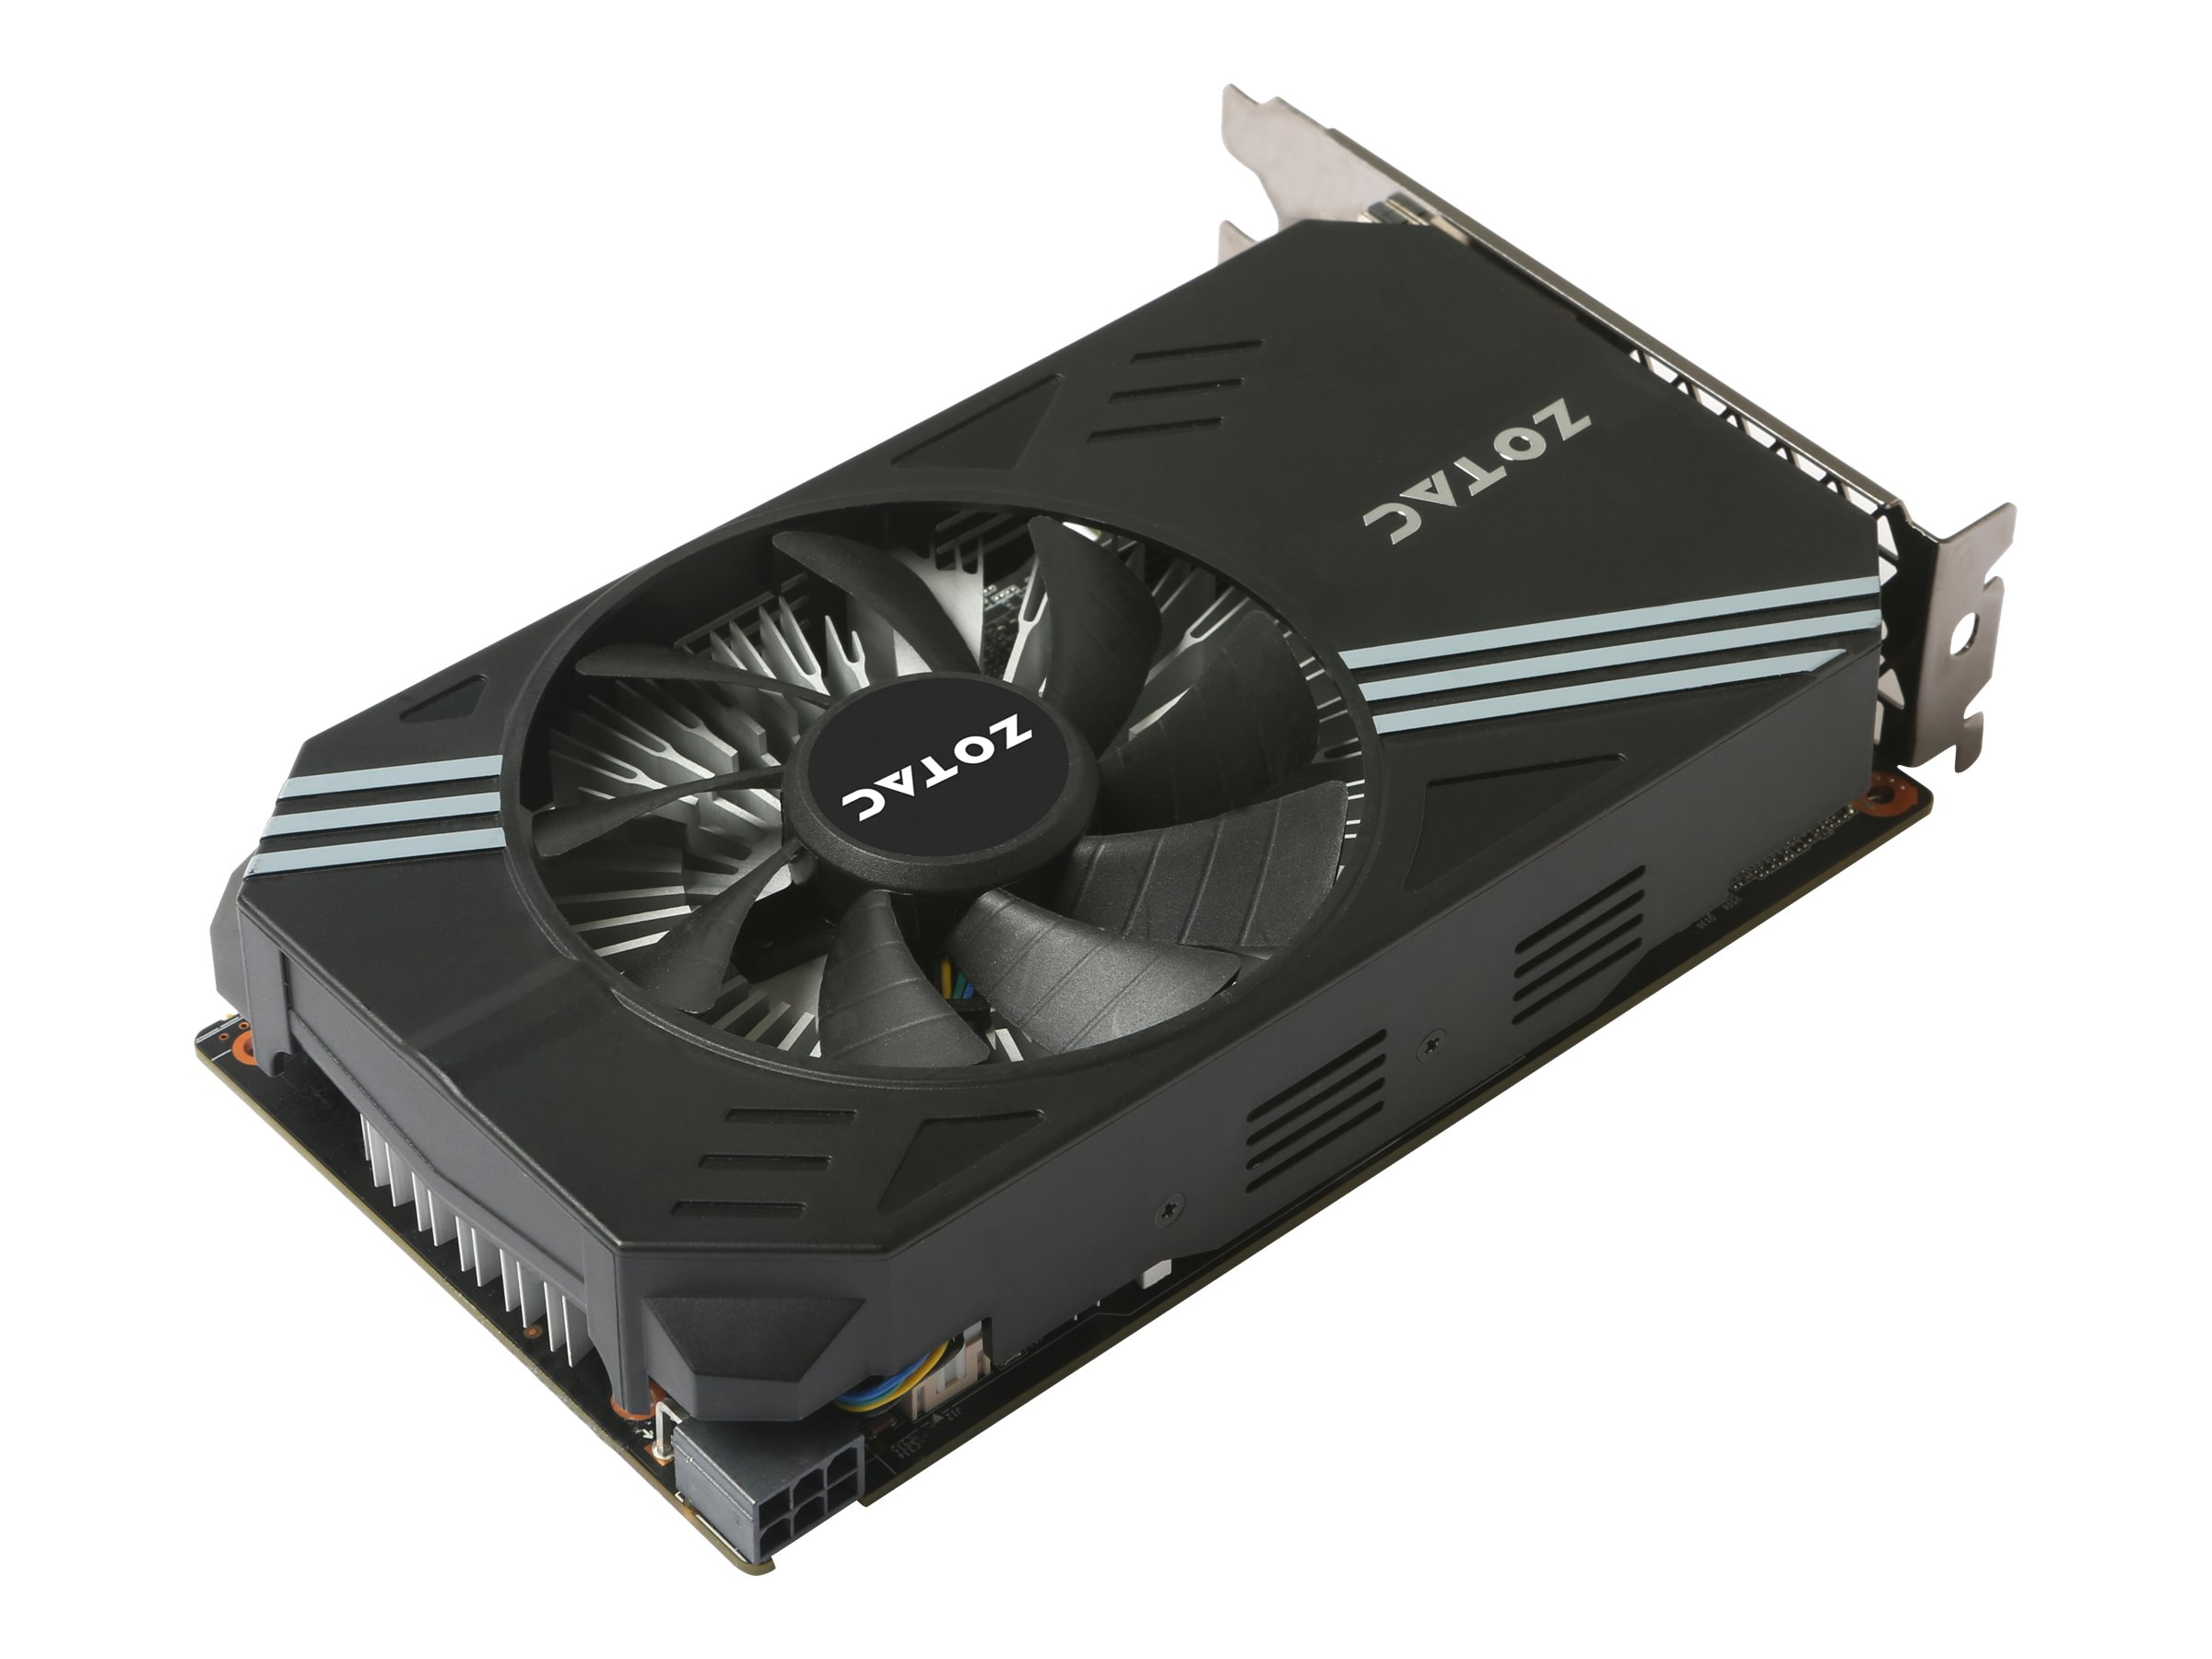 ZOTAC GeForce GTX 1060 Mini - Grafikkarten - GF GTX 1060 - 6 GB GDDR5 - PCIe 3.0 x16 - DVI, HDMI, 3 x DisplayPort